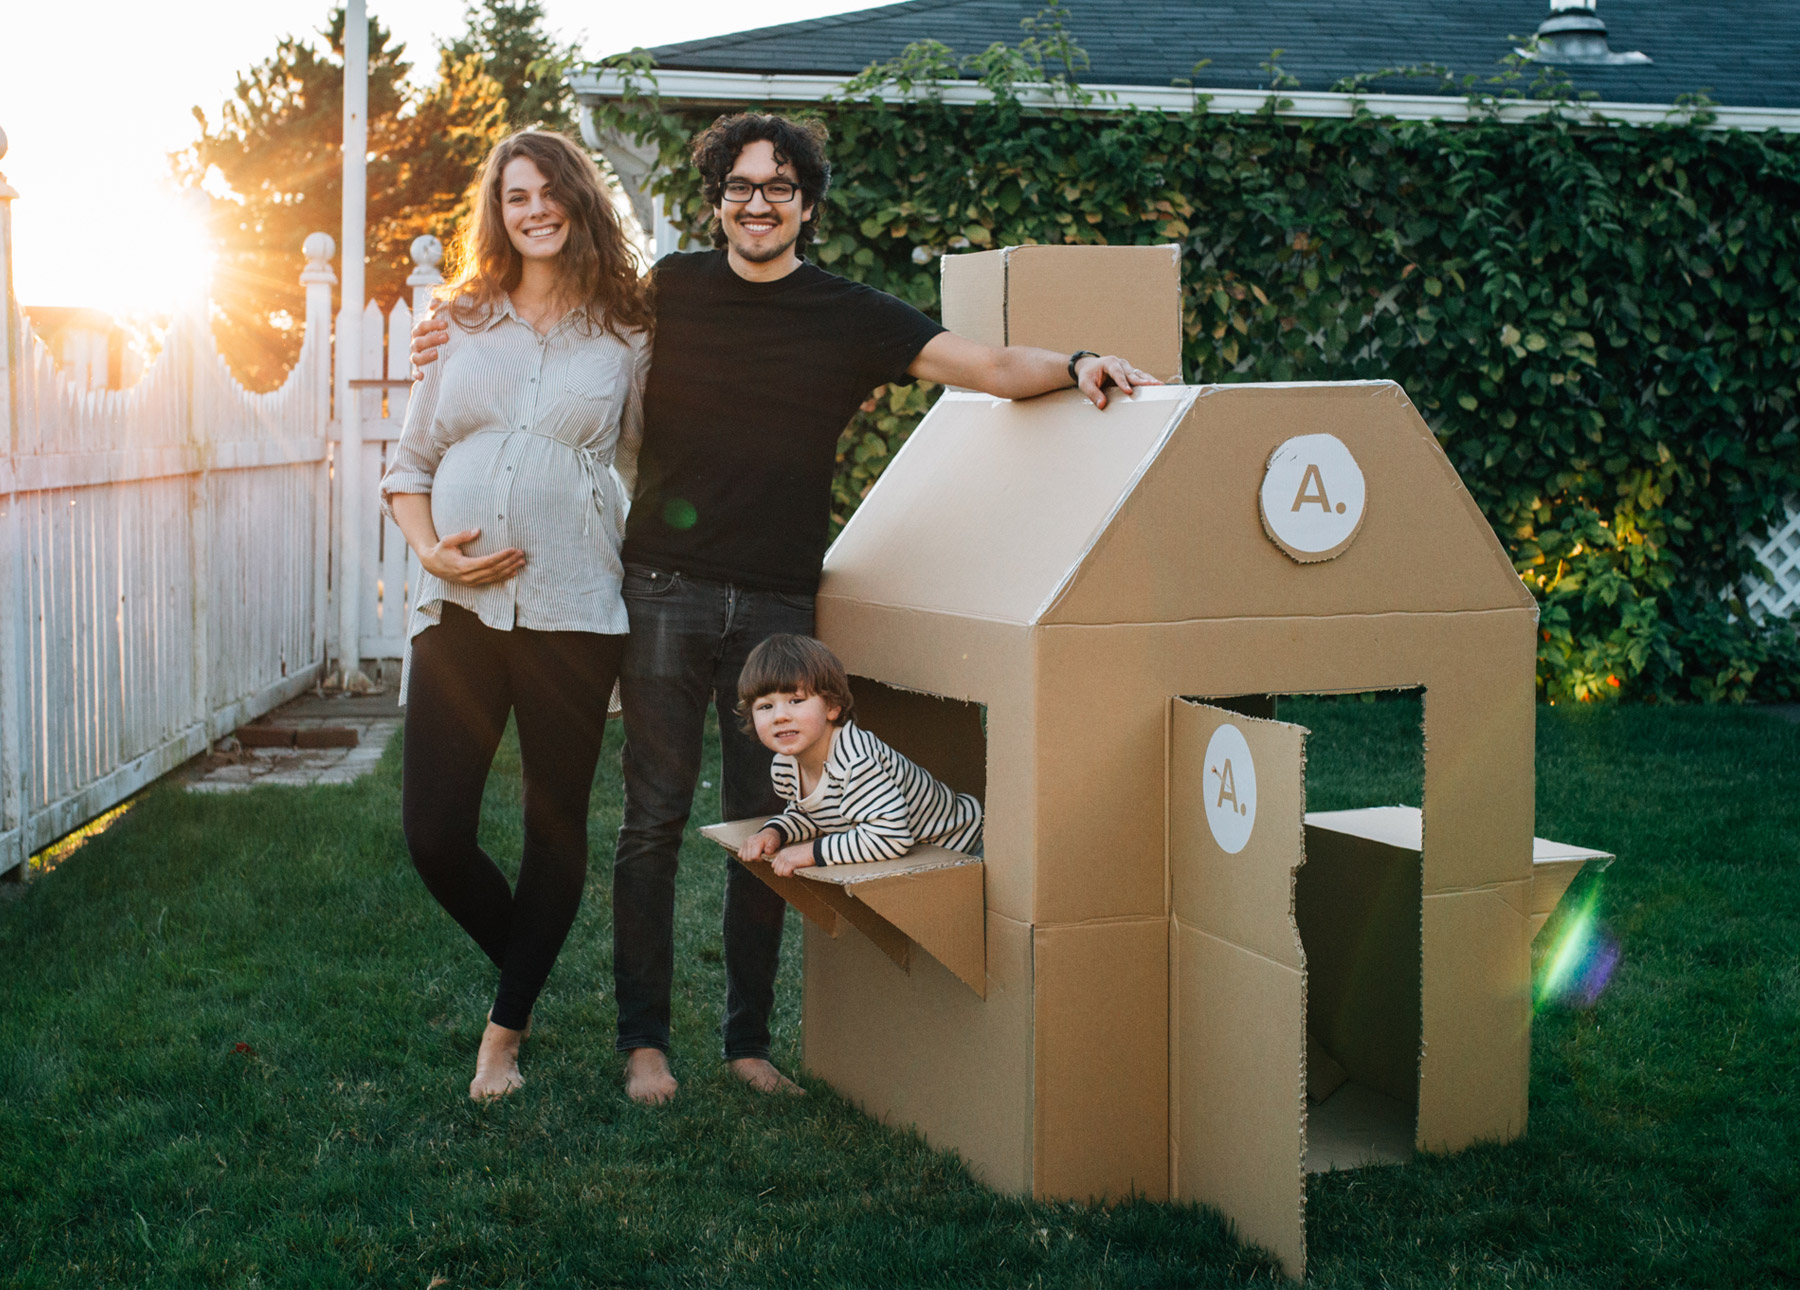 Jorge, Emmy Lou, and Matthias all pose excitedly with the fully completed box fort.